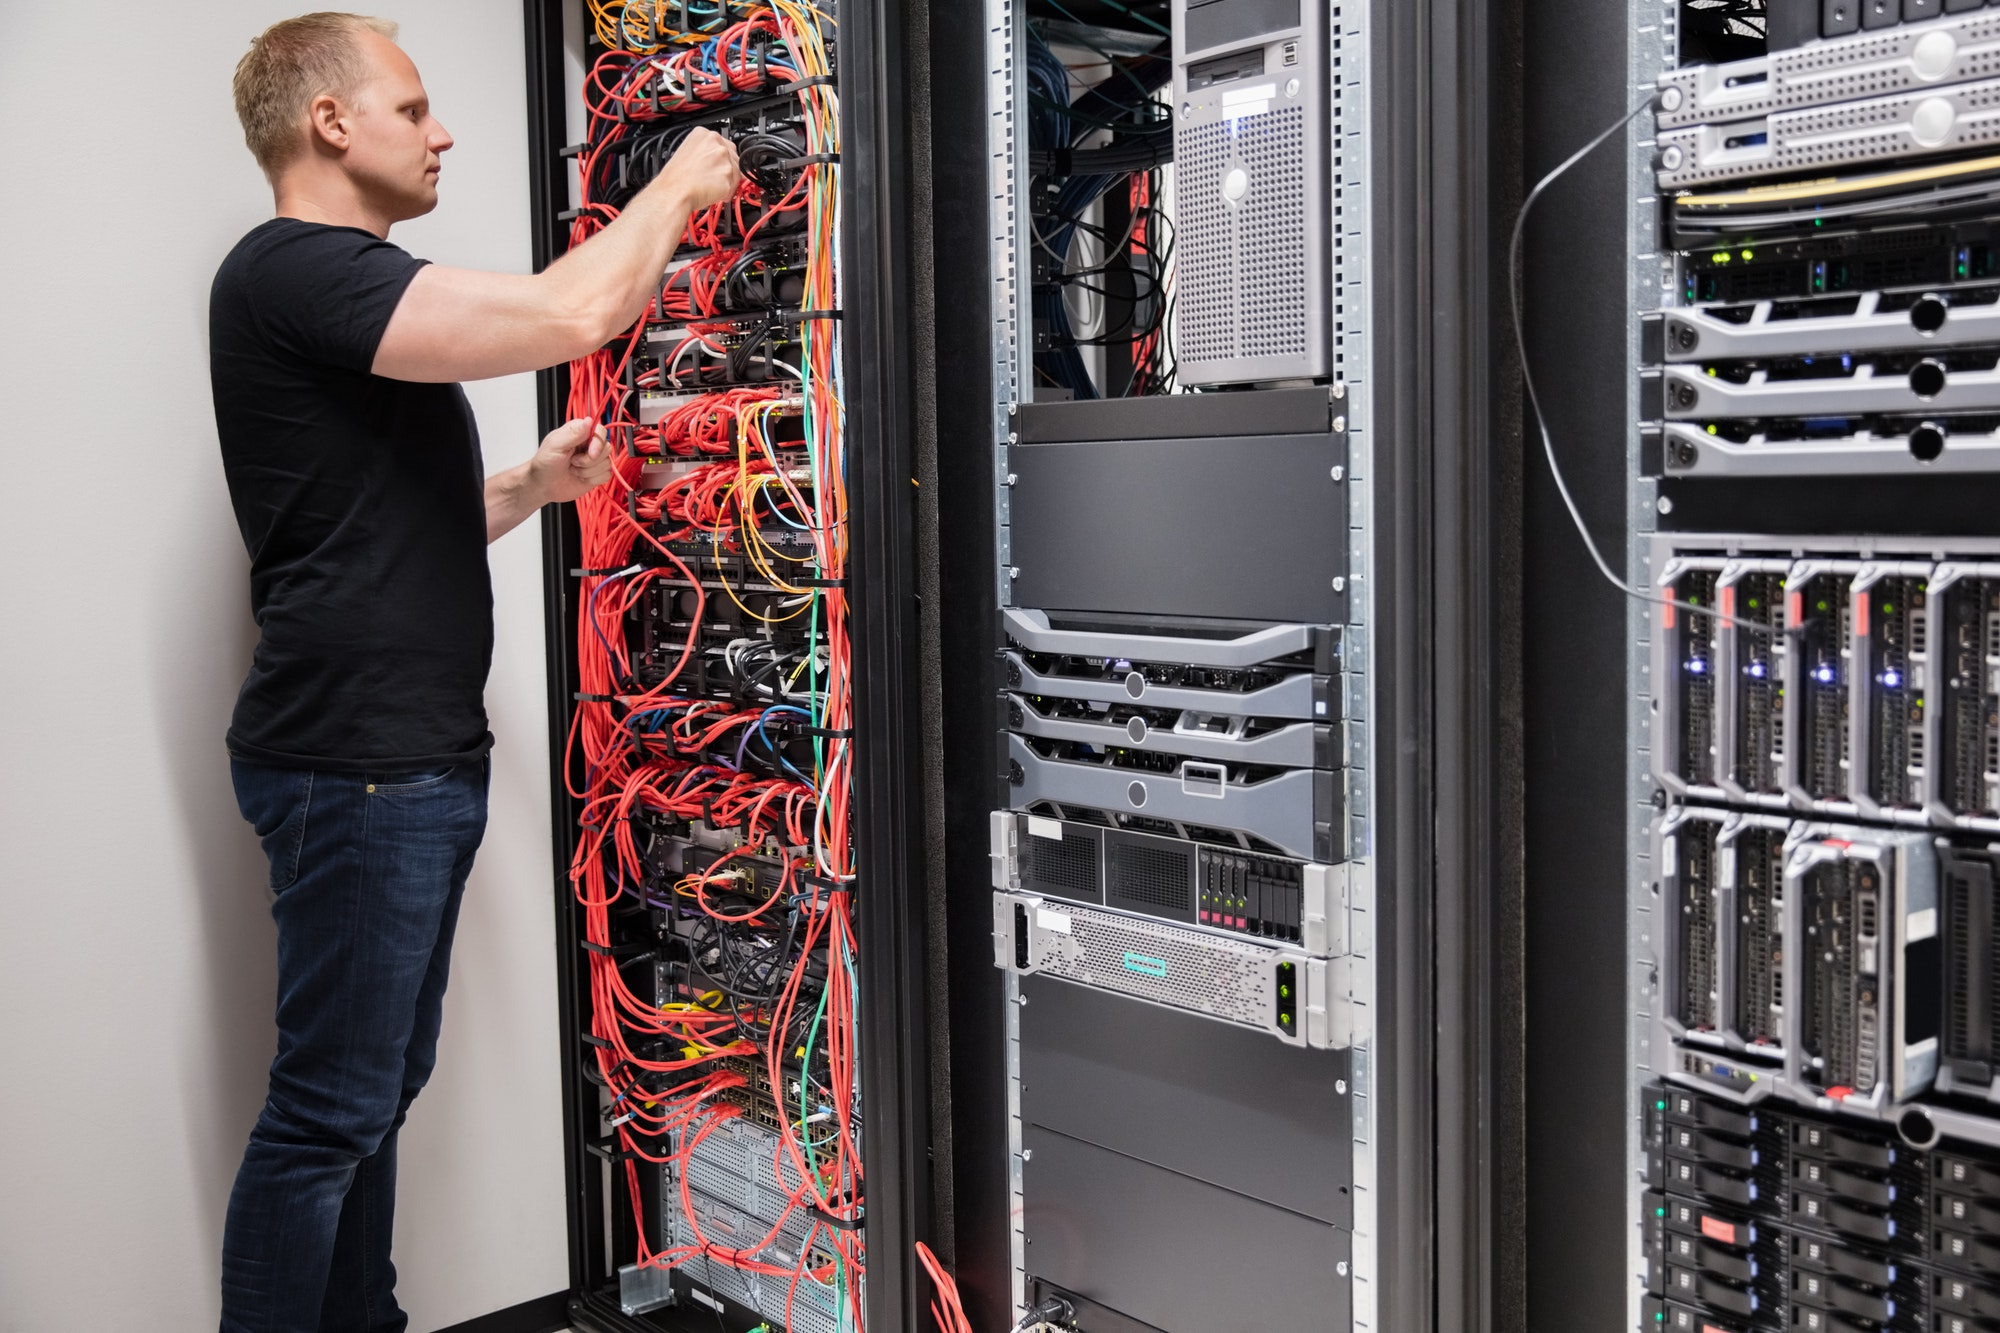 IT Technician Checking With Network Cables Connected To Servers